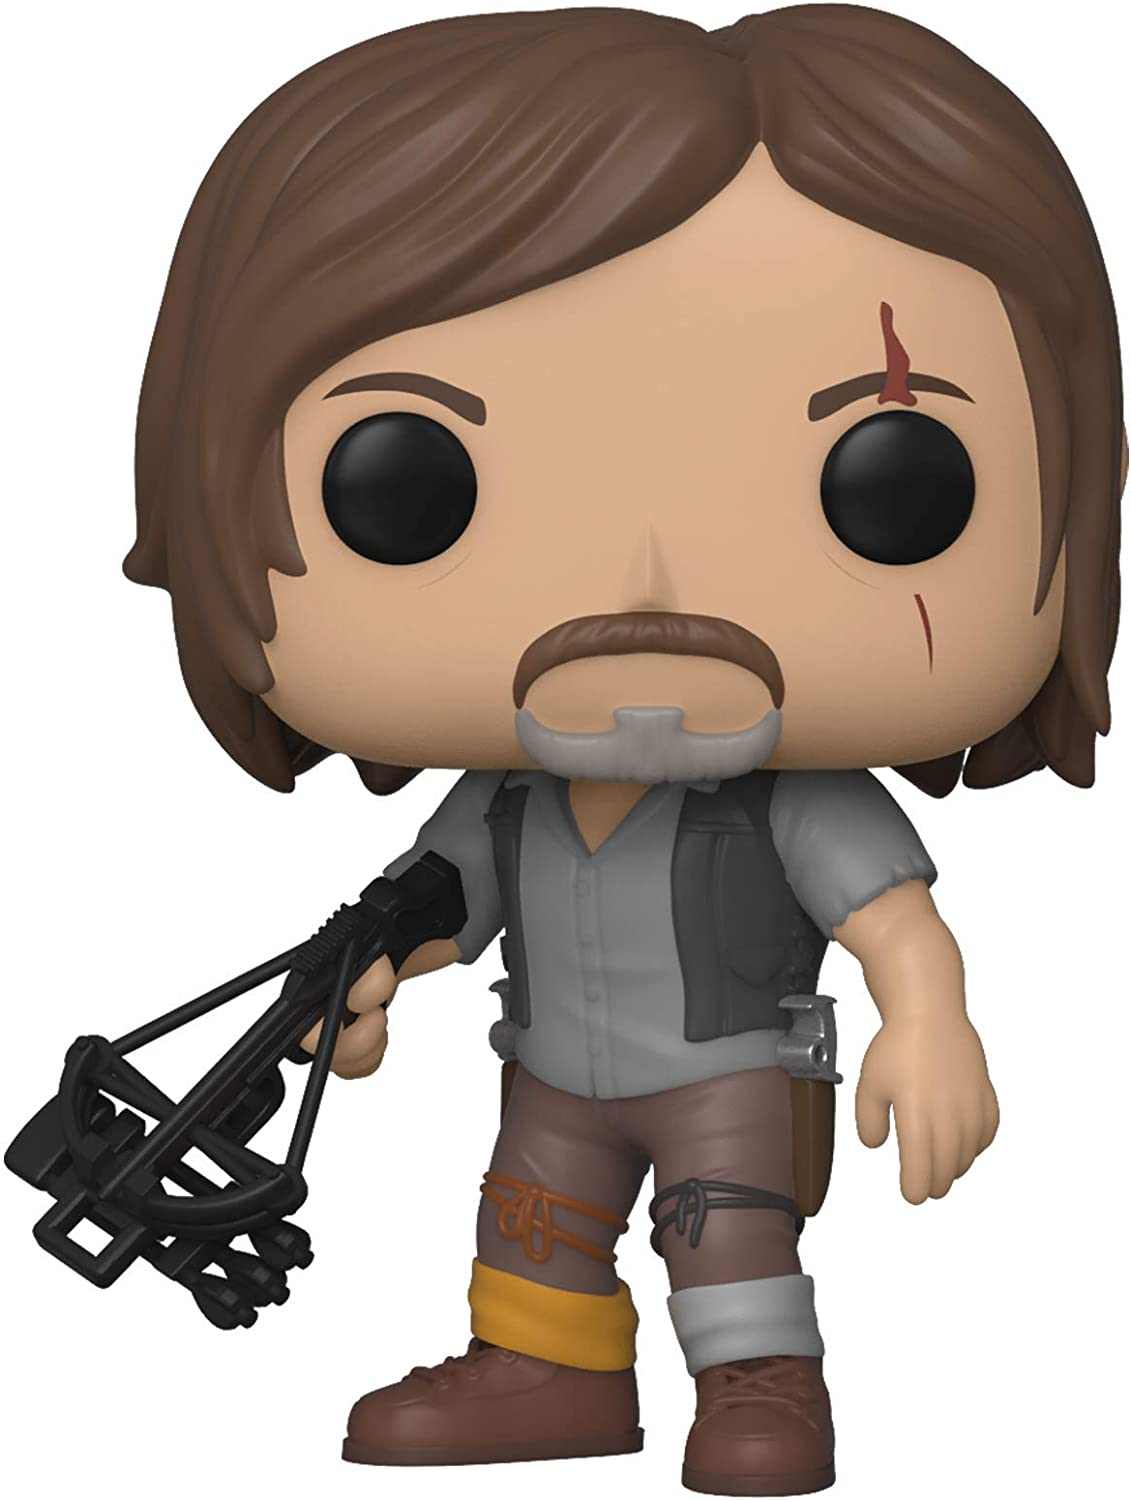 Funko Pop! TV: The Walking Dead - Daryl